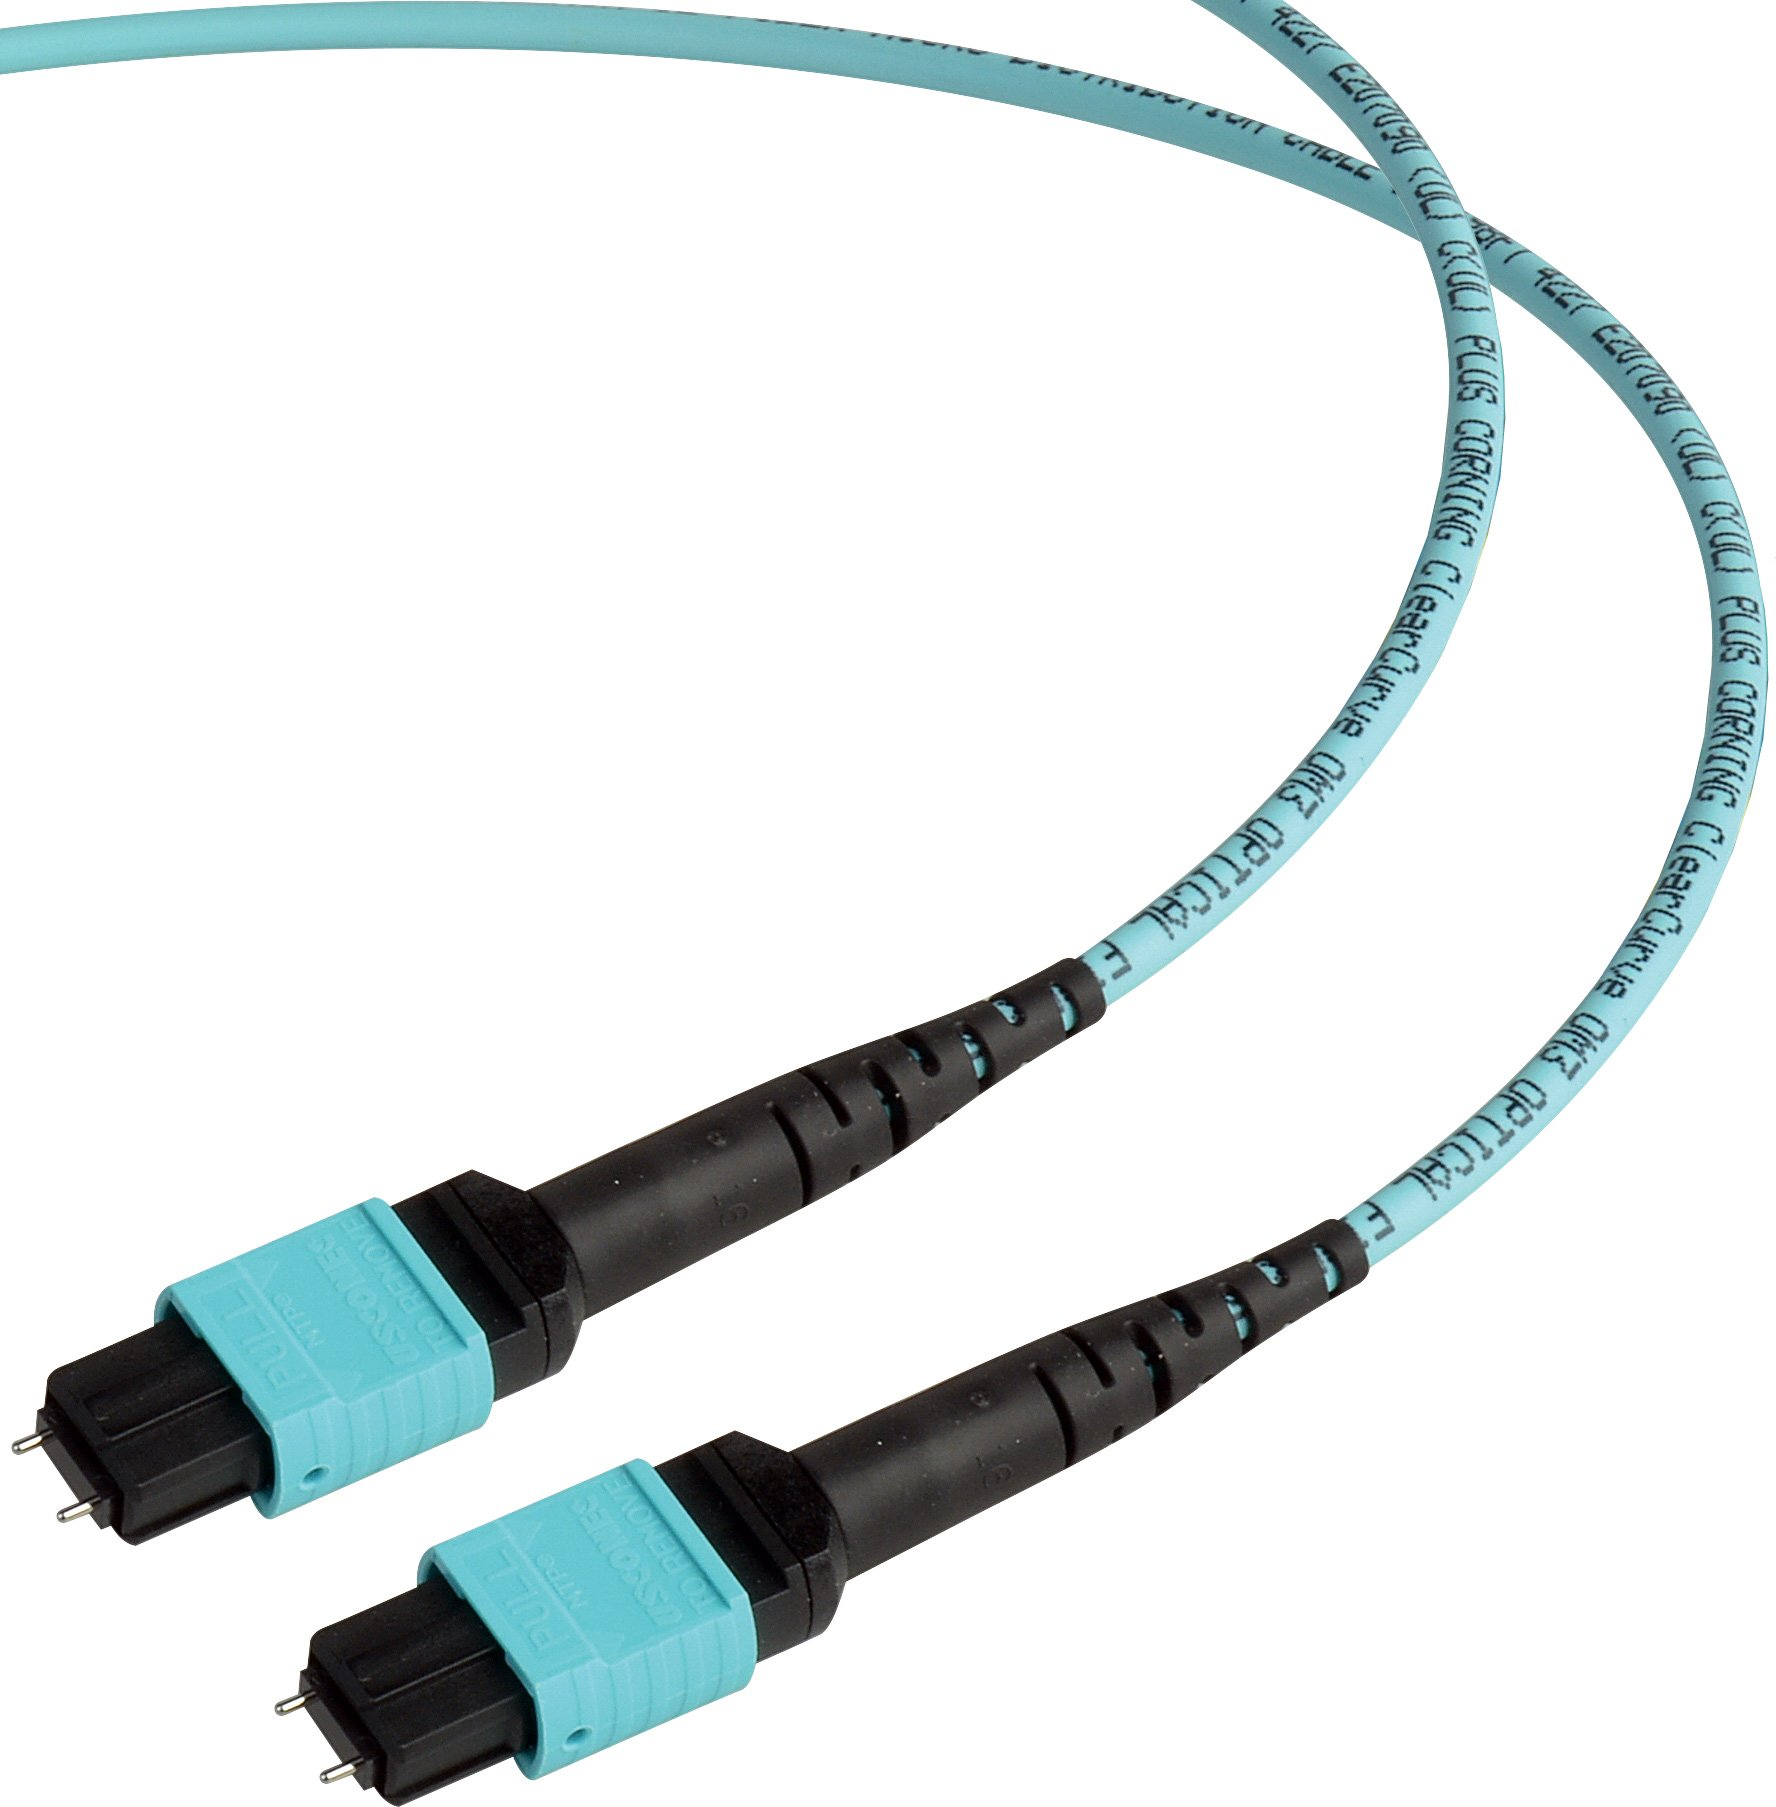 MTP MPO Fiber Optic Cables